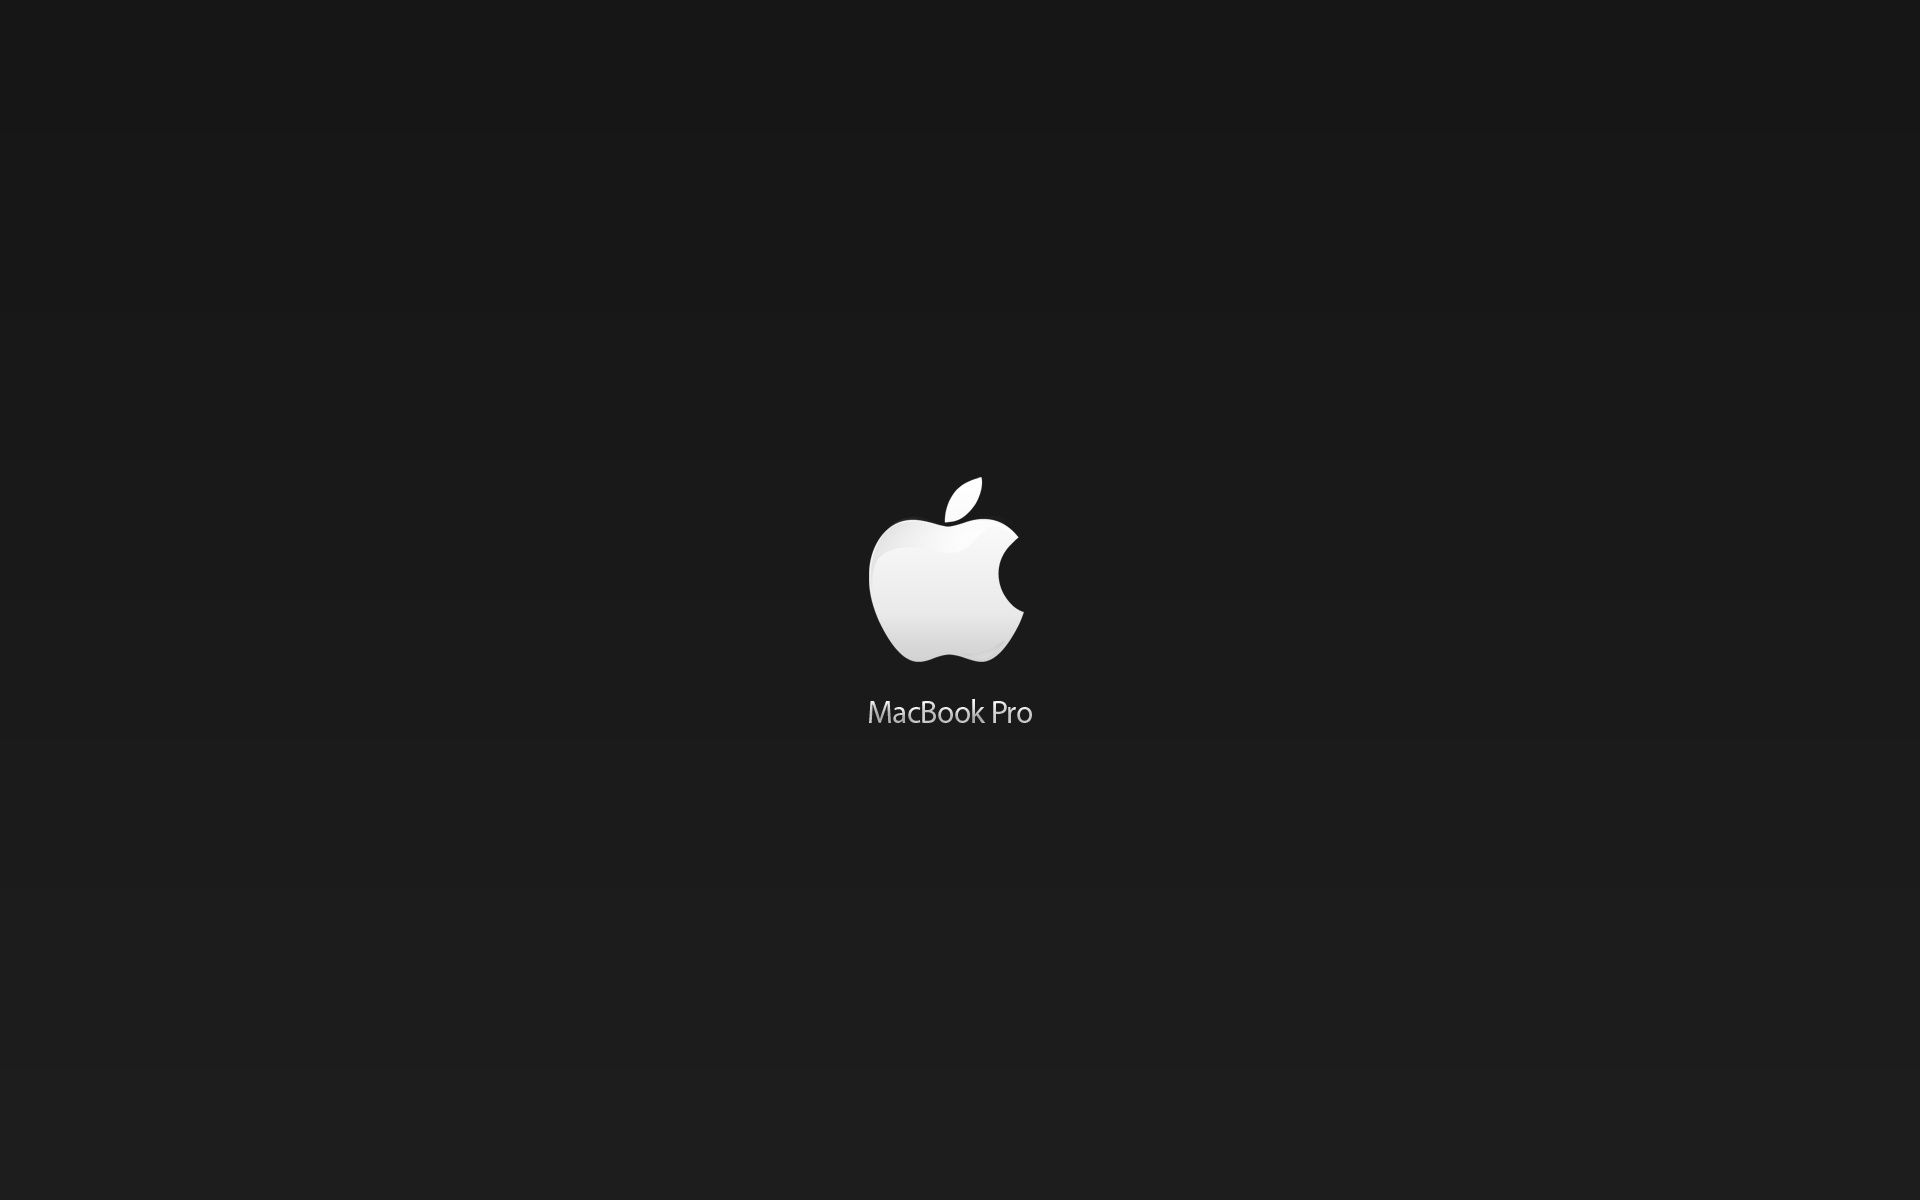 Mac Book Pro Wallpaper